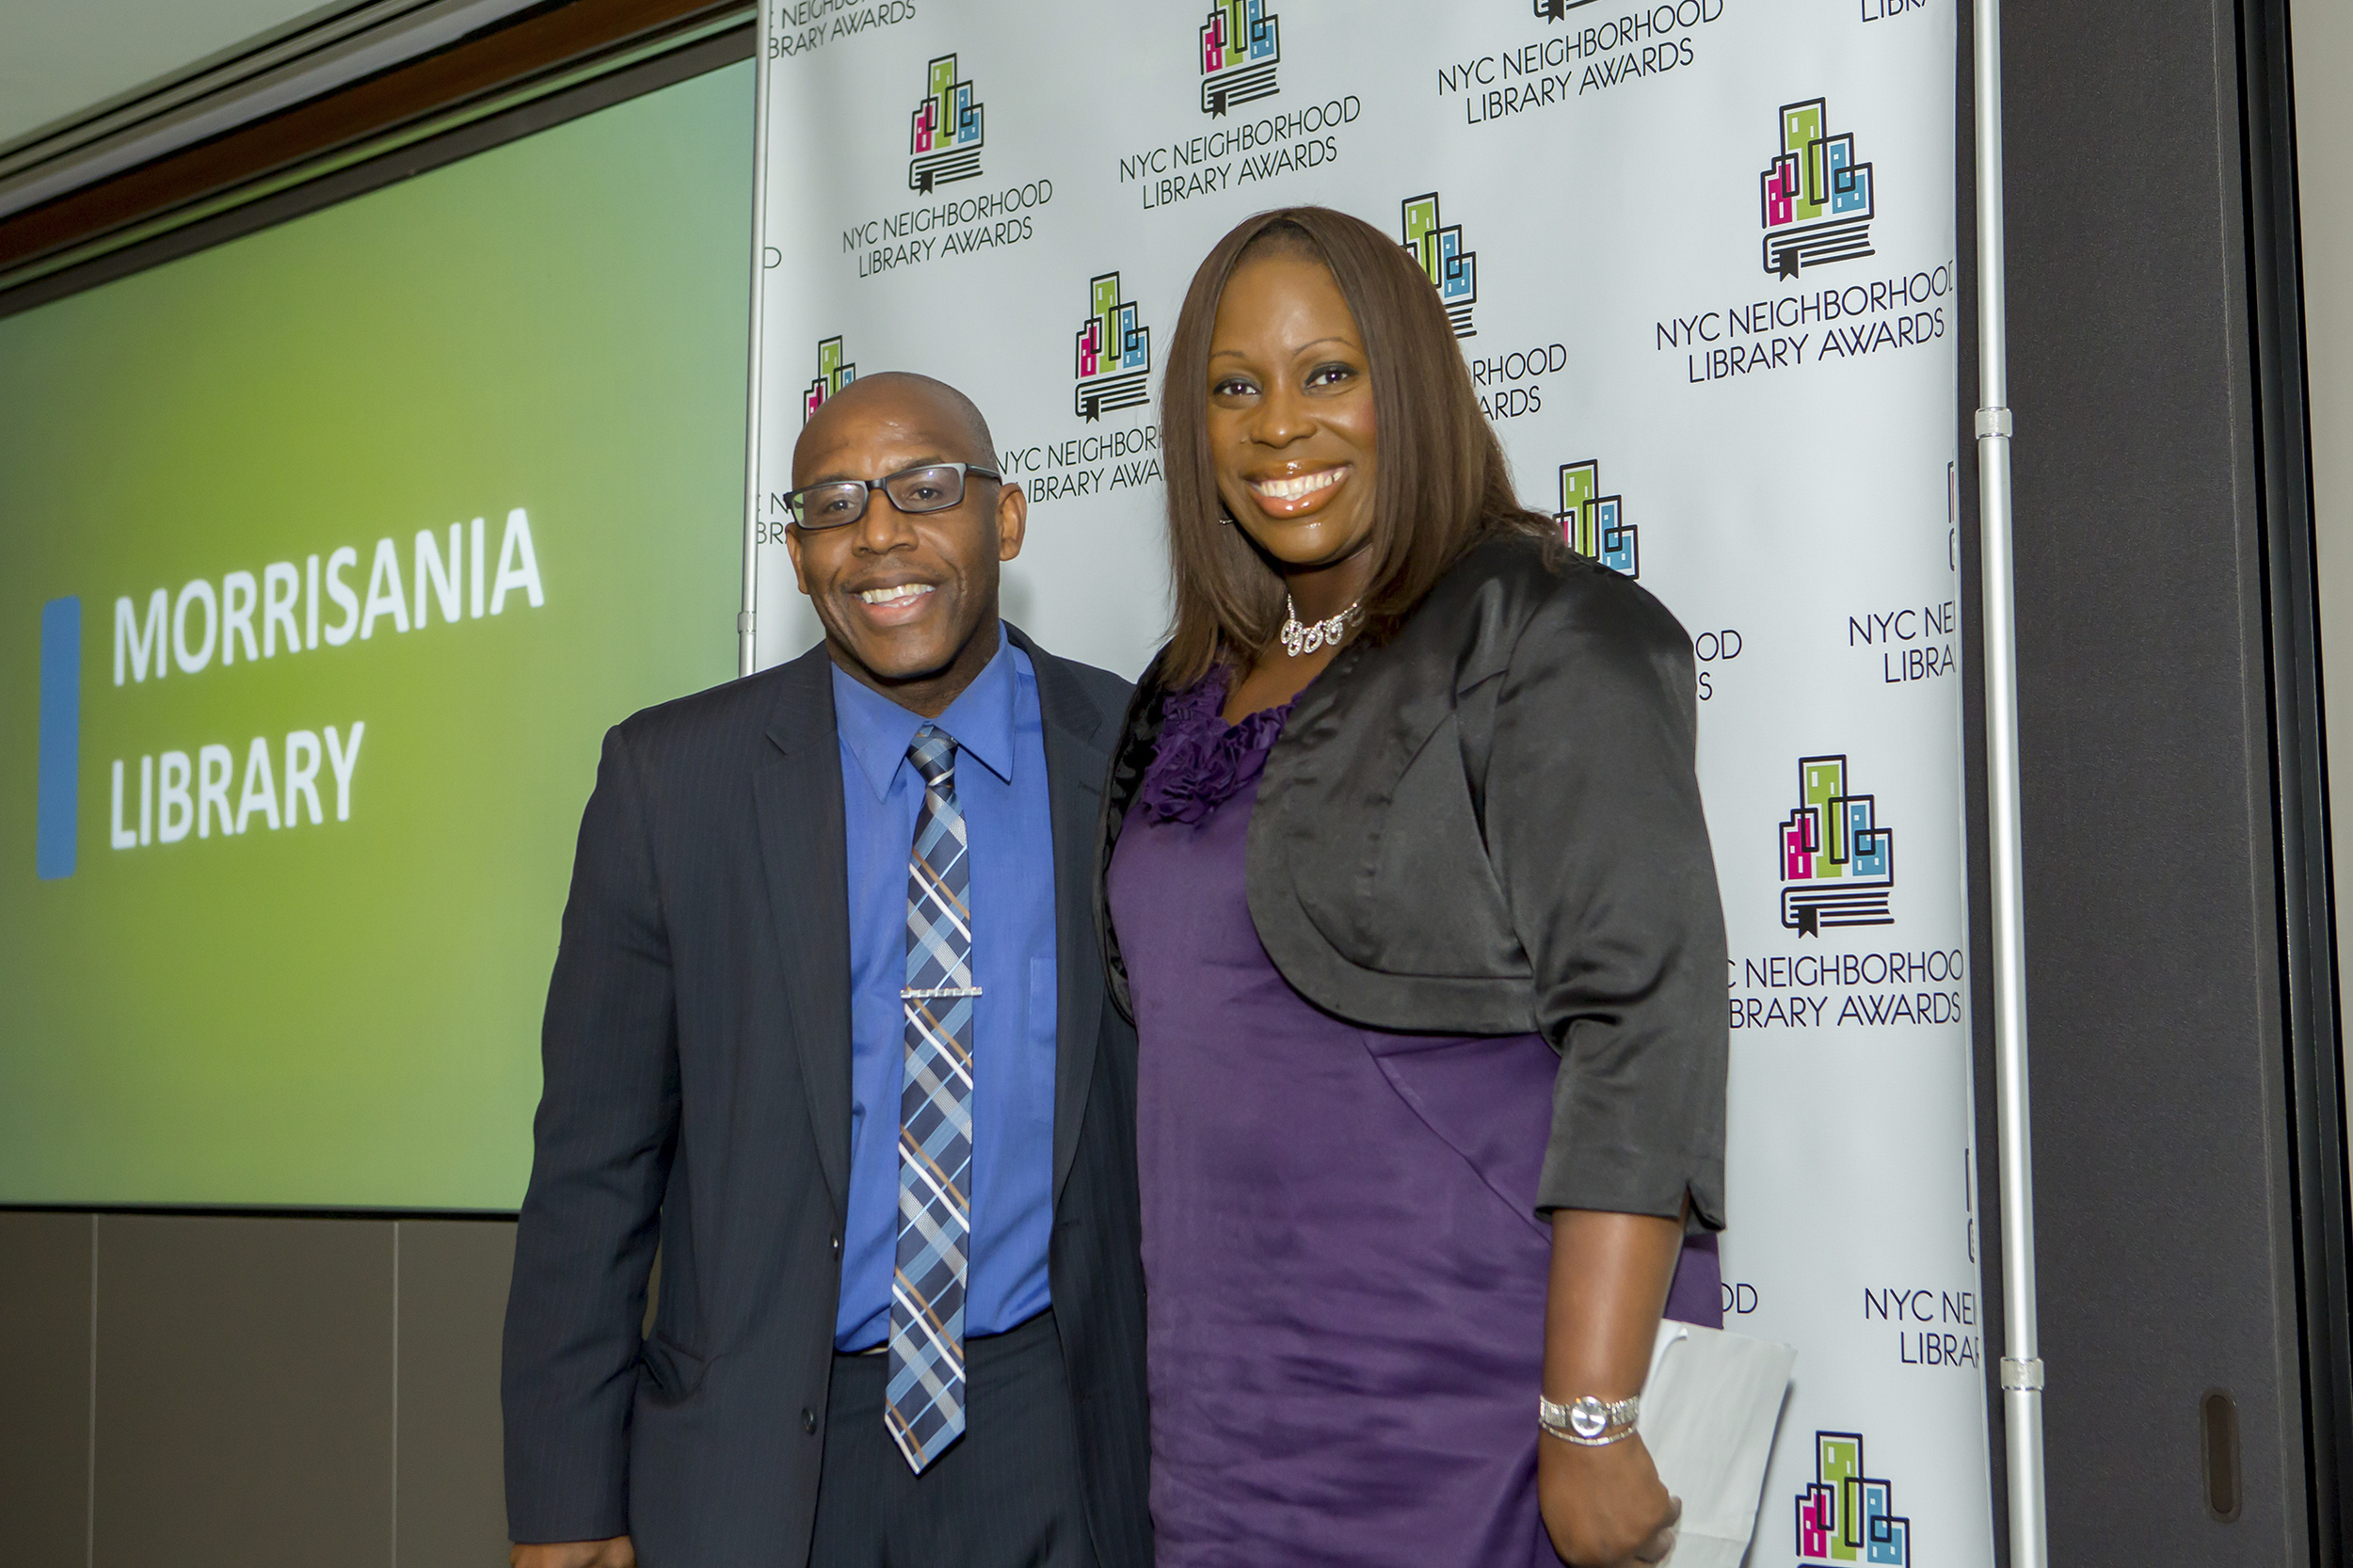 Council Member Vanessa Gibson and Colbert Nembhard, Manager of the Morrisania Library